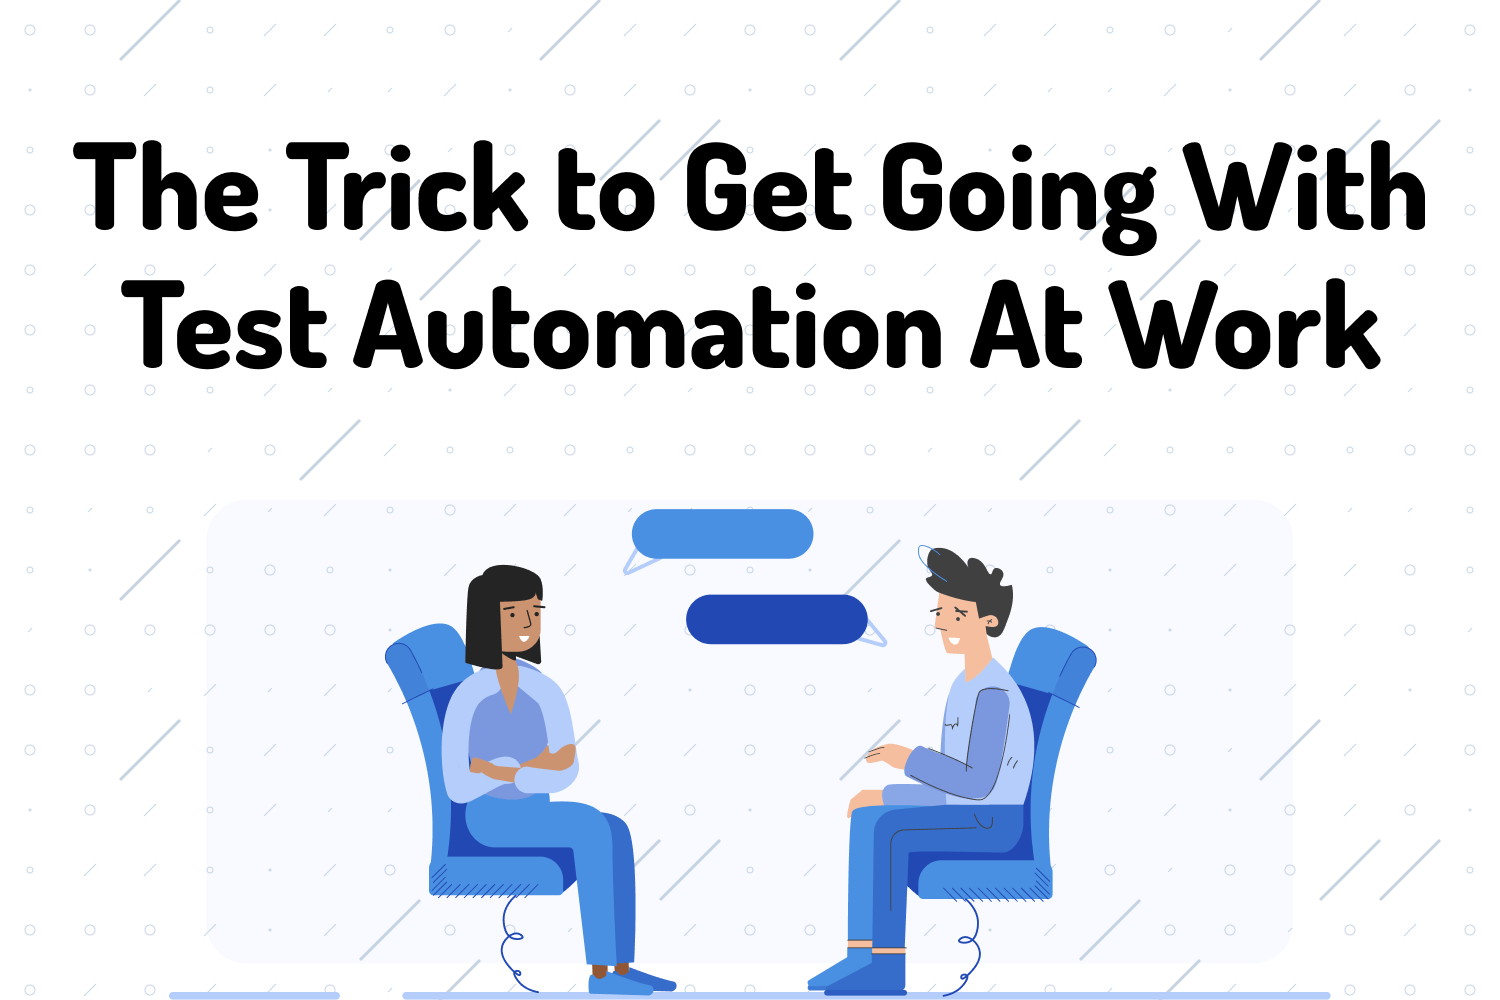 The Trick to Get Going With Test Automation At Work